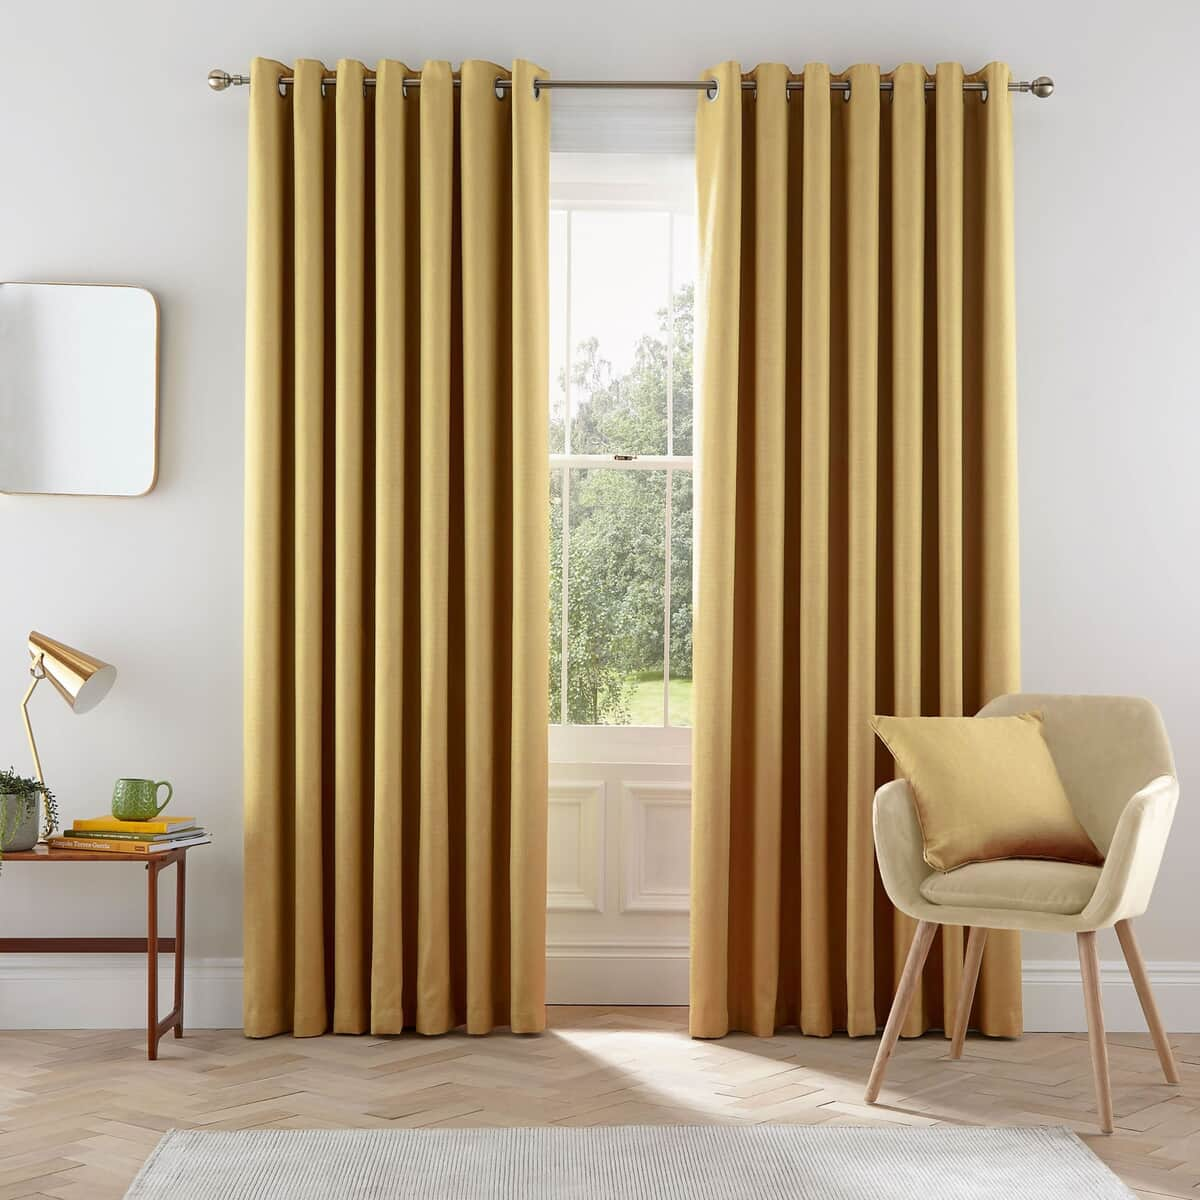 Helena Springfield Eden Chartreuse Curtains large